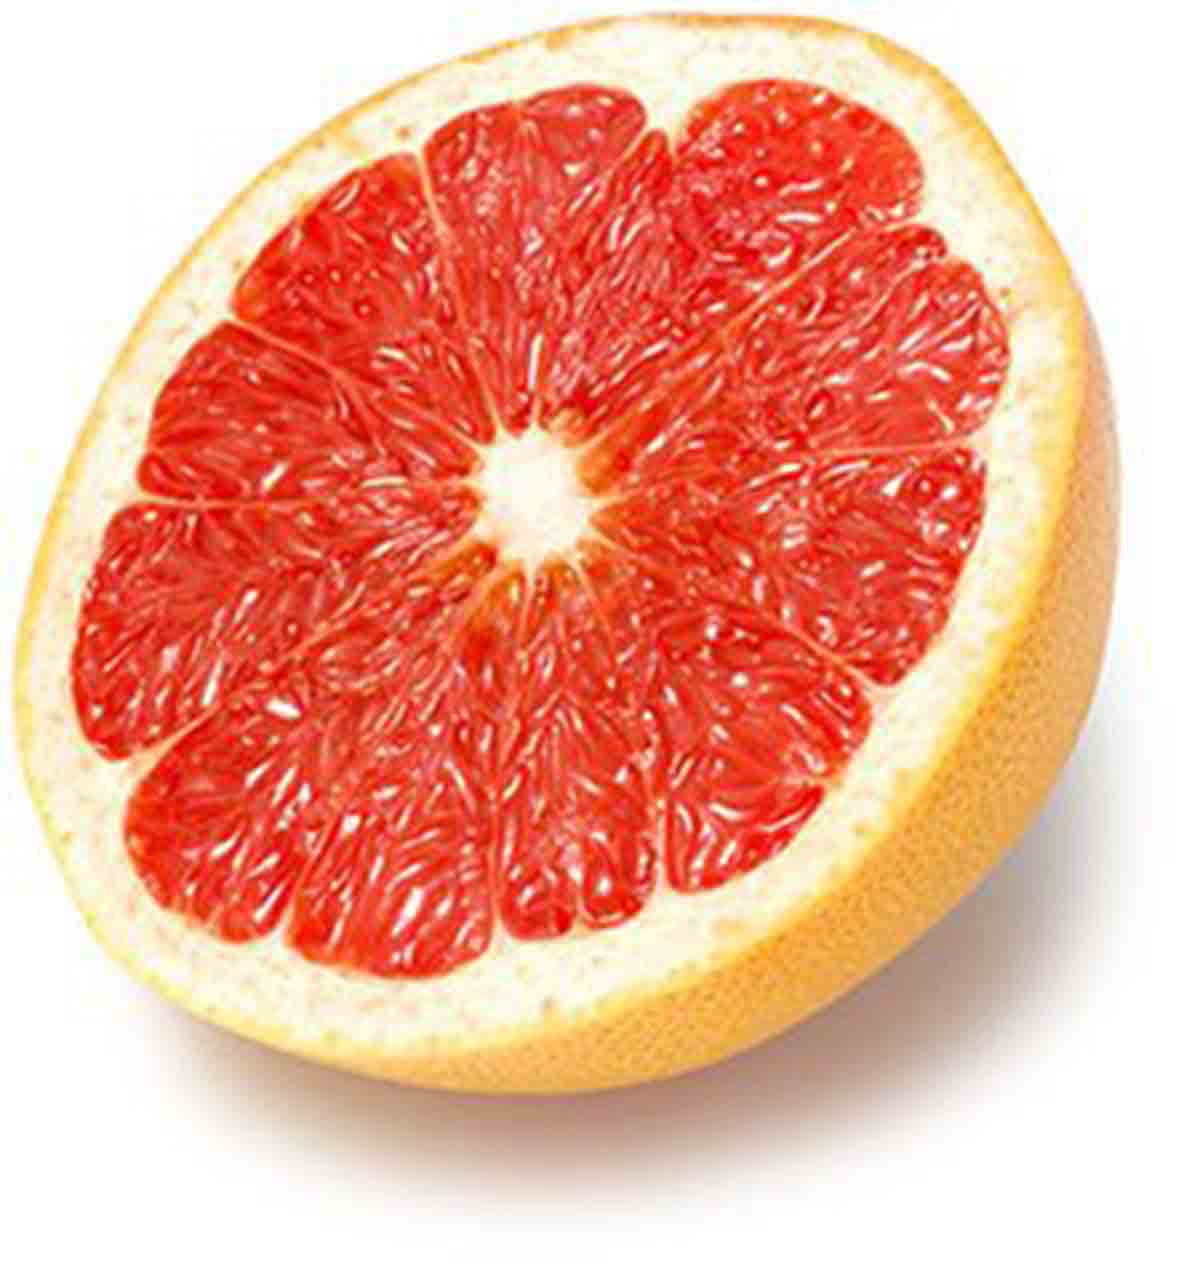 Does Grapefruit Powder Cause Fat Loss?